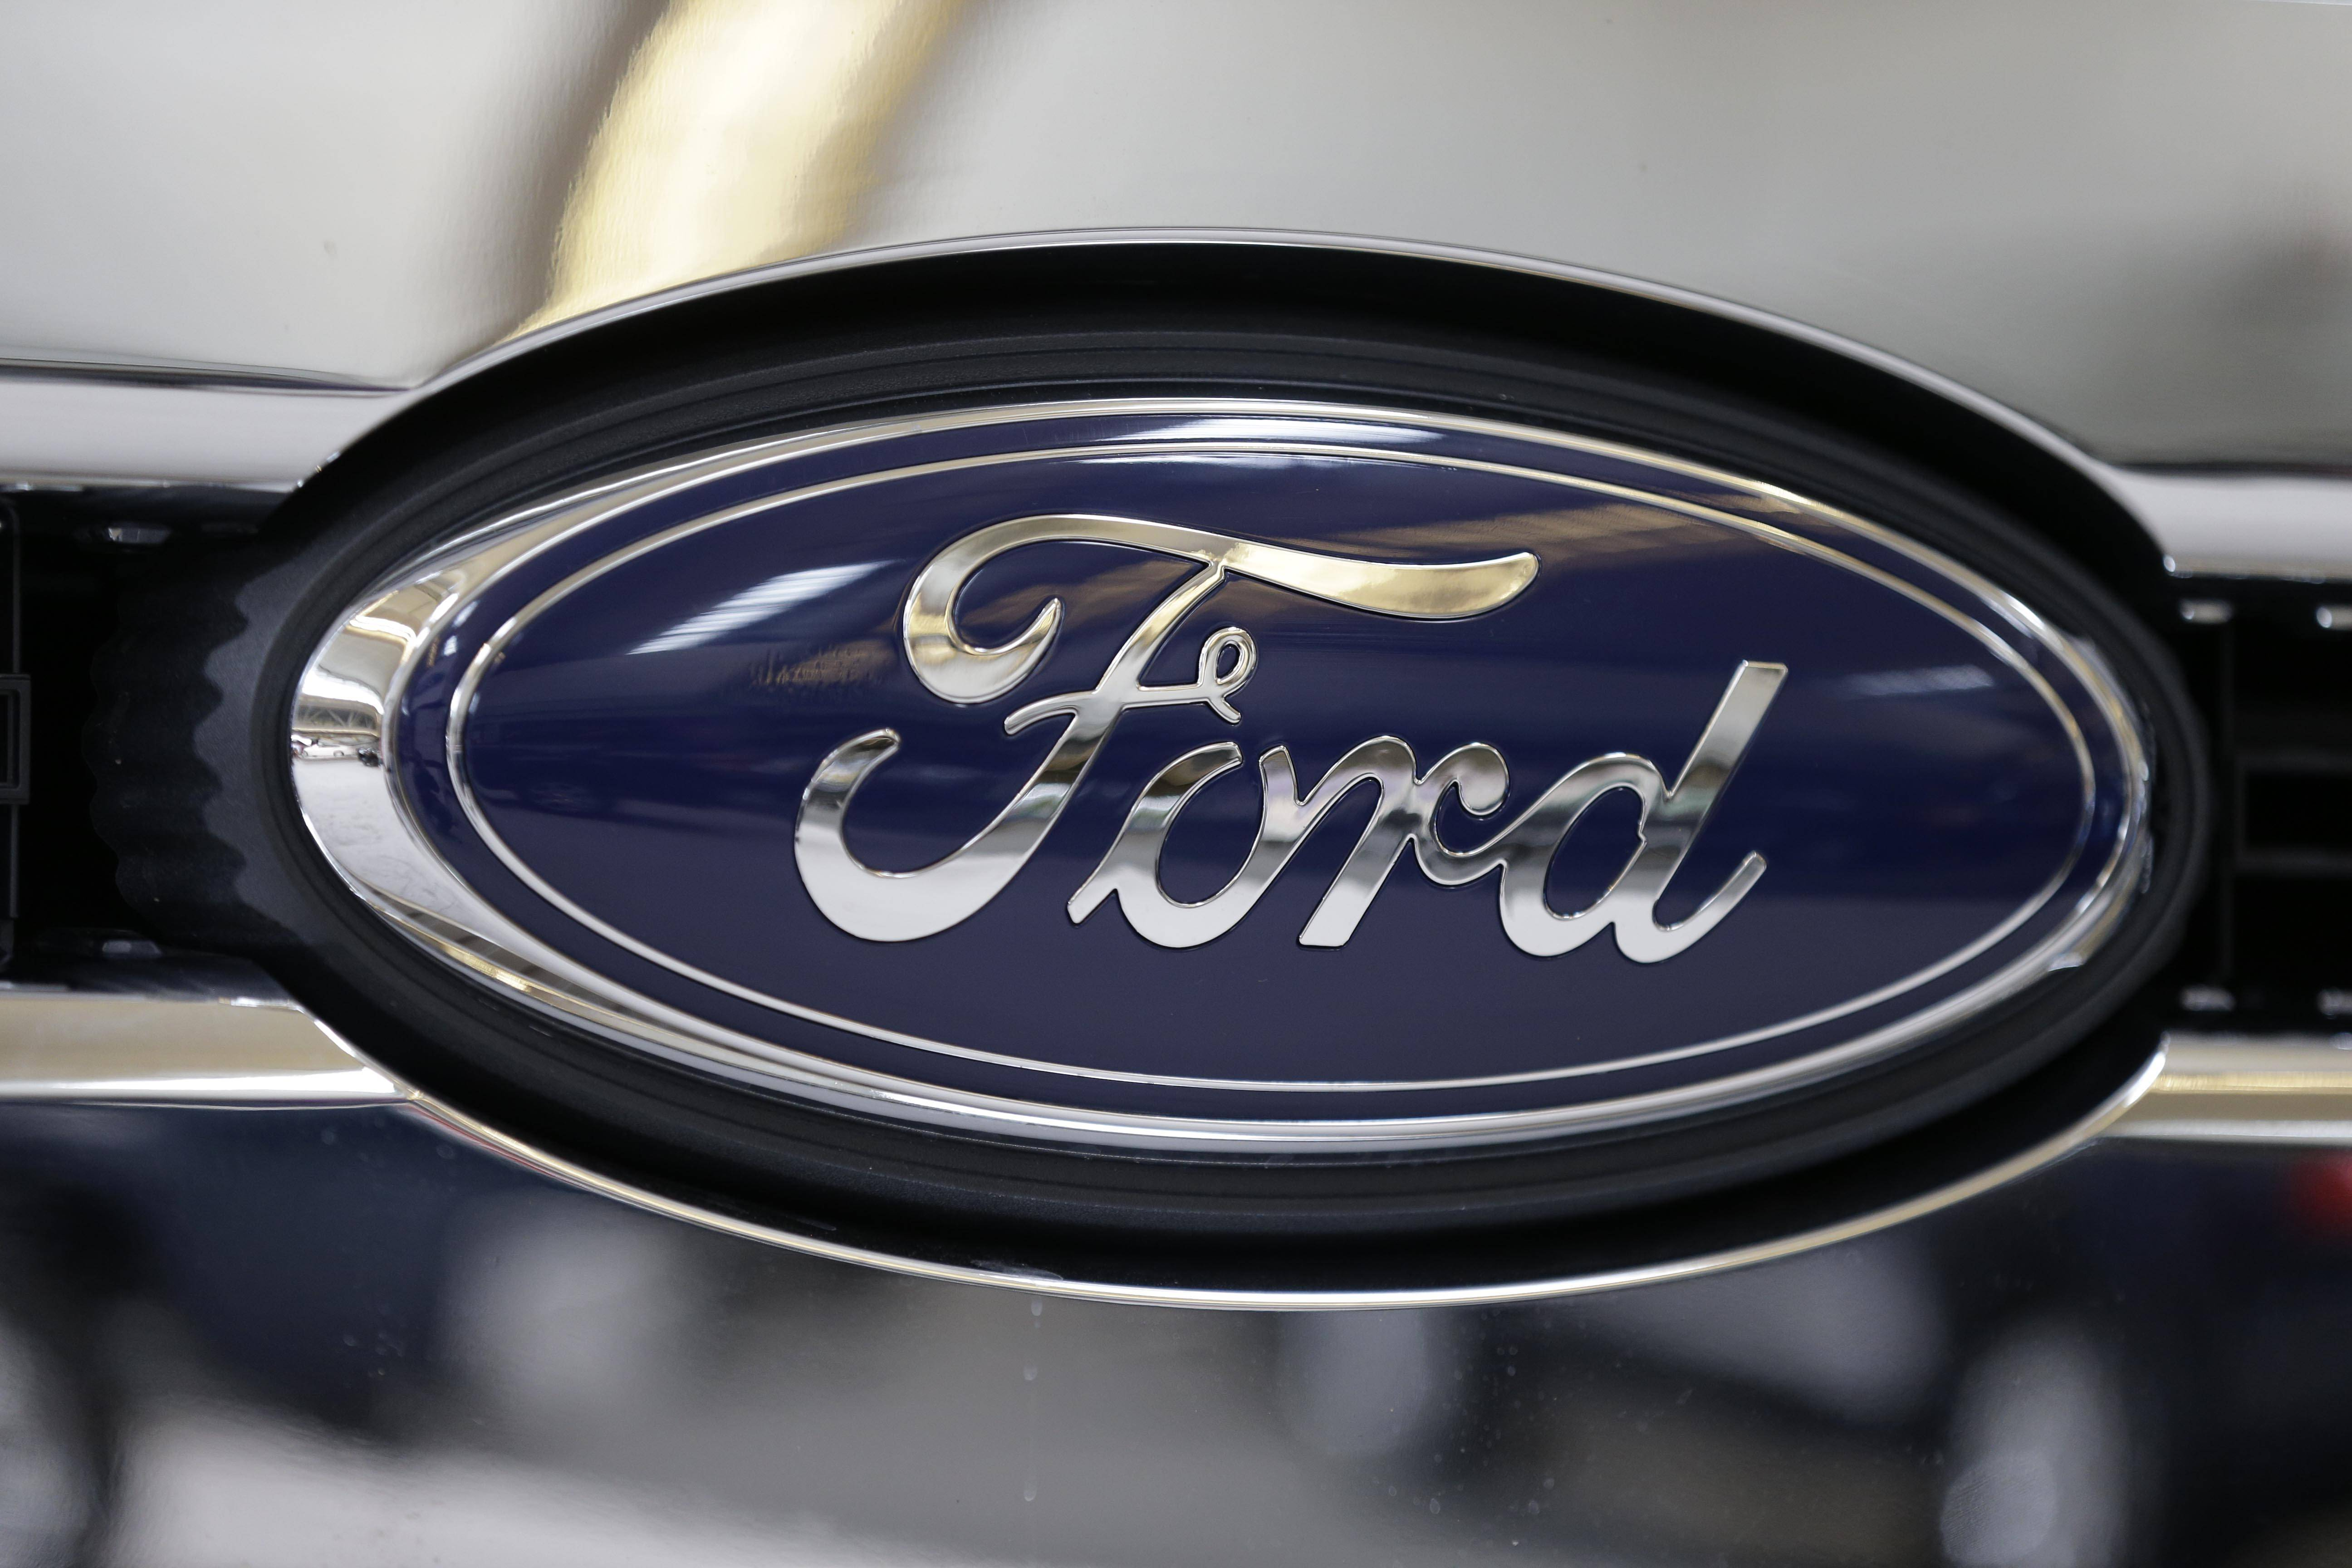 Ford Motor Co.'s worldwide sales rose in the first quarter, propelled by growing strength in Asia and Europe. But weakness in North America dragged down the company's profit.